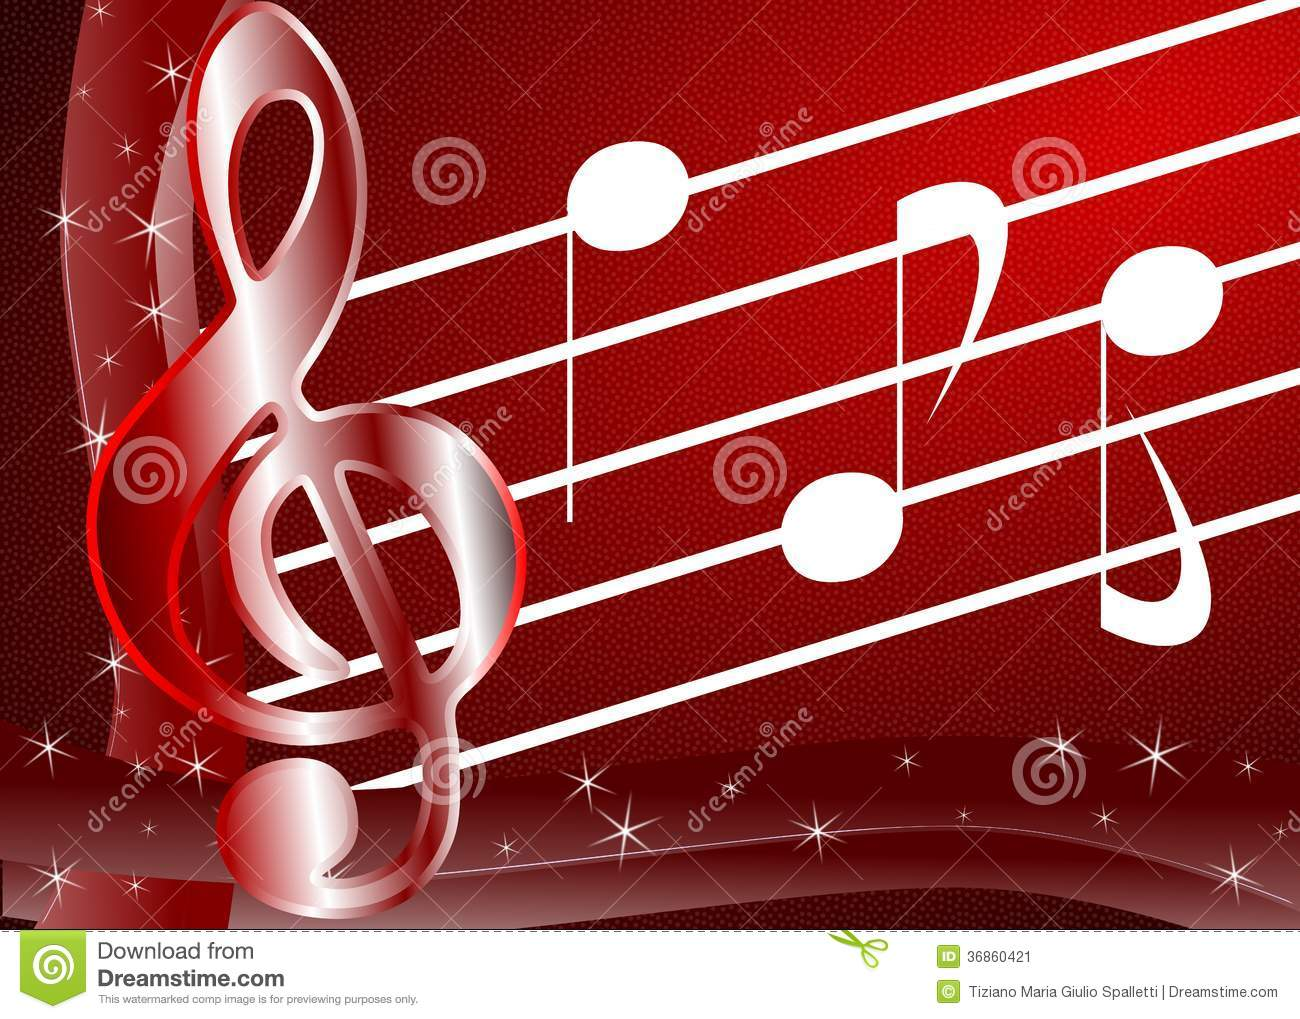 treble clef on abstract red background with notes stock illustration